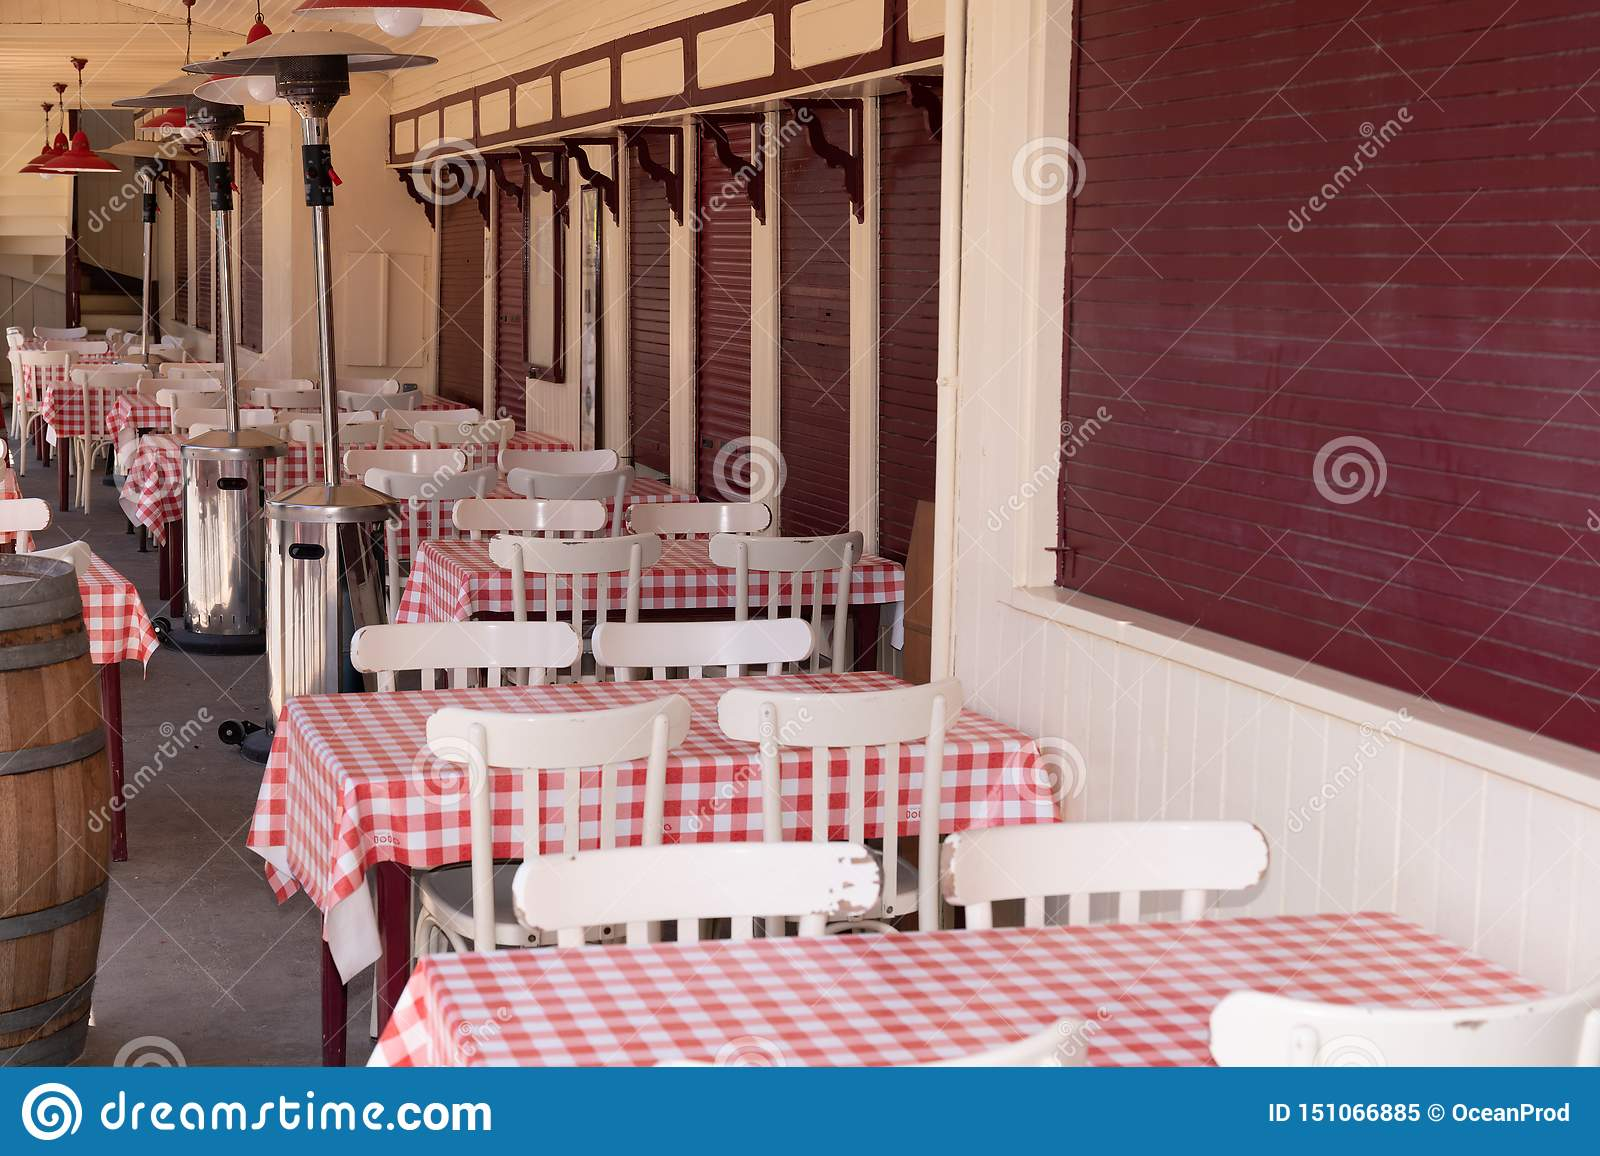 Outdoor Terrace Summer Bar Restaurant In Herbe Village In Arcachon Bay In France Stock Image Image Of Oystering Europa 151066885